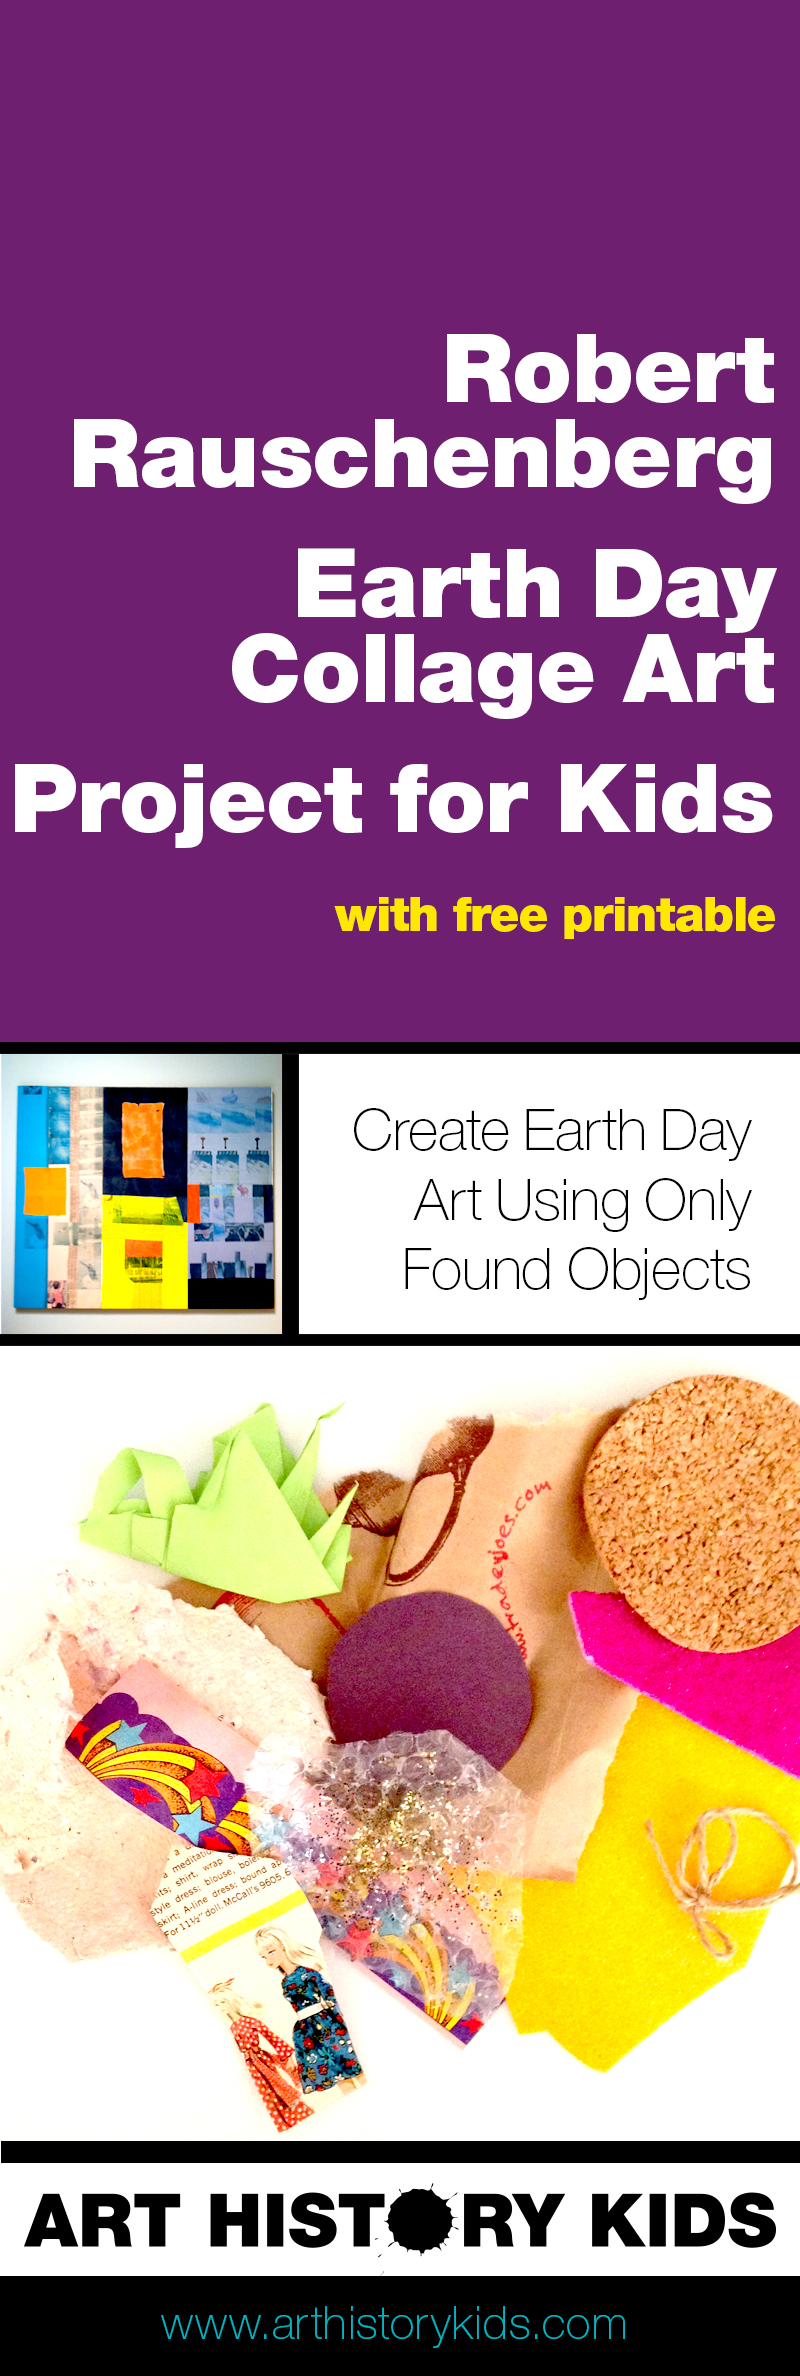 A Robert Rauschenberg unit study for kids. Perfect for Earth Day. Create collage art using found objects and learn about one of the Art History Greats. It's a project for kids as young as toddlers all the way up to high school students.